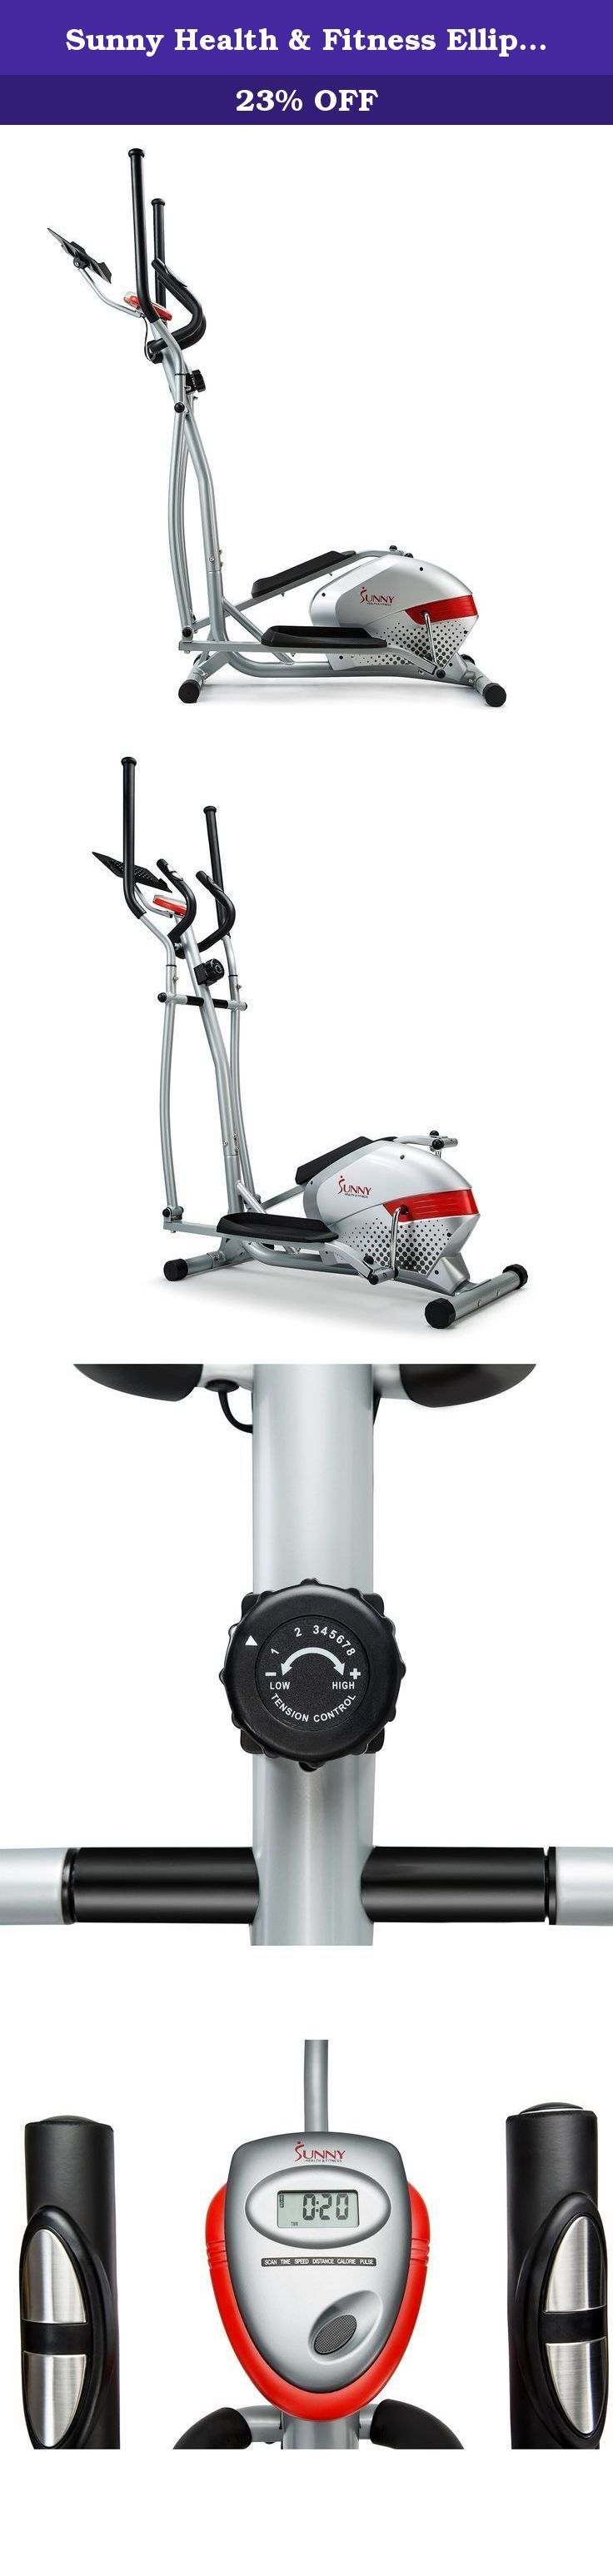 Sunny Health & Fitness Elliptical Trainer with Tablet Holder, Grey. The Elliptical Trainer with tablet holder by Sunny Health & Fitness brings the same premium quality of a fitness Club Elliptical into the comfort of your own home! made of top grade steel construction, this Elliptical is built to last and carries various features to help provide a more enjoyable workout session. The LCD console keeps track of your time, speed, distance, calories burned and pulse while the newly installed...